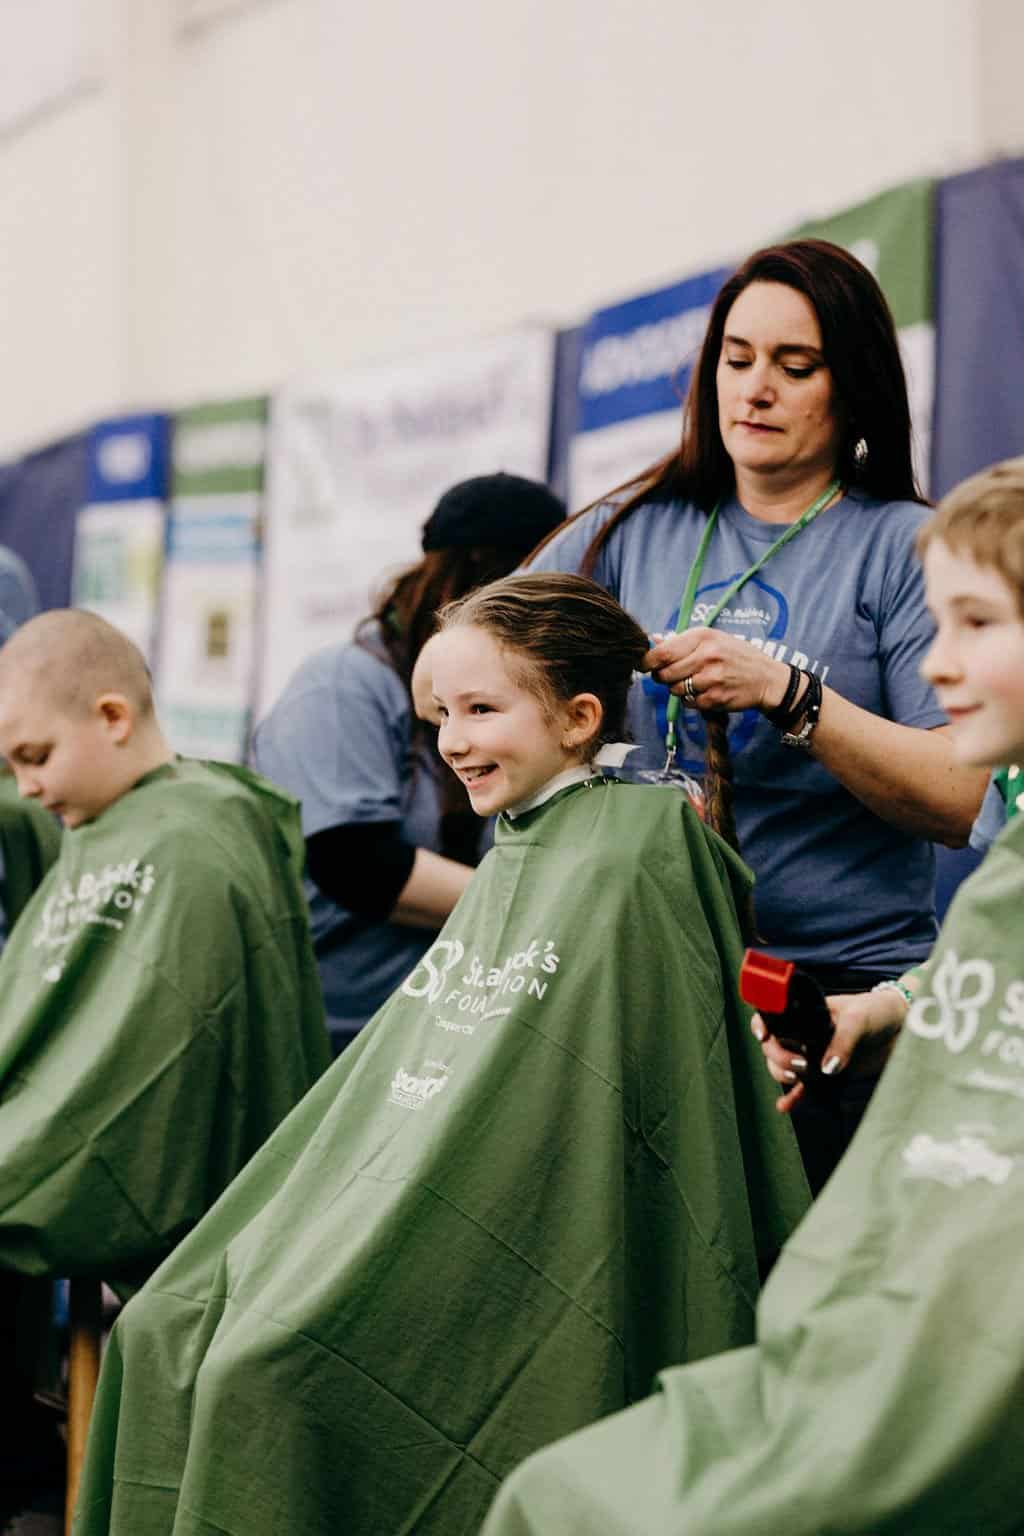 St. Baldricks | I bet you wouldn't shave your head 217